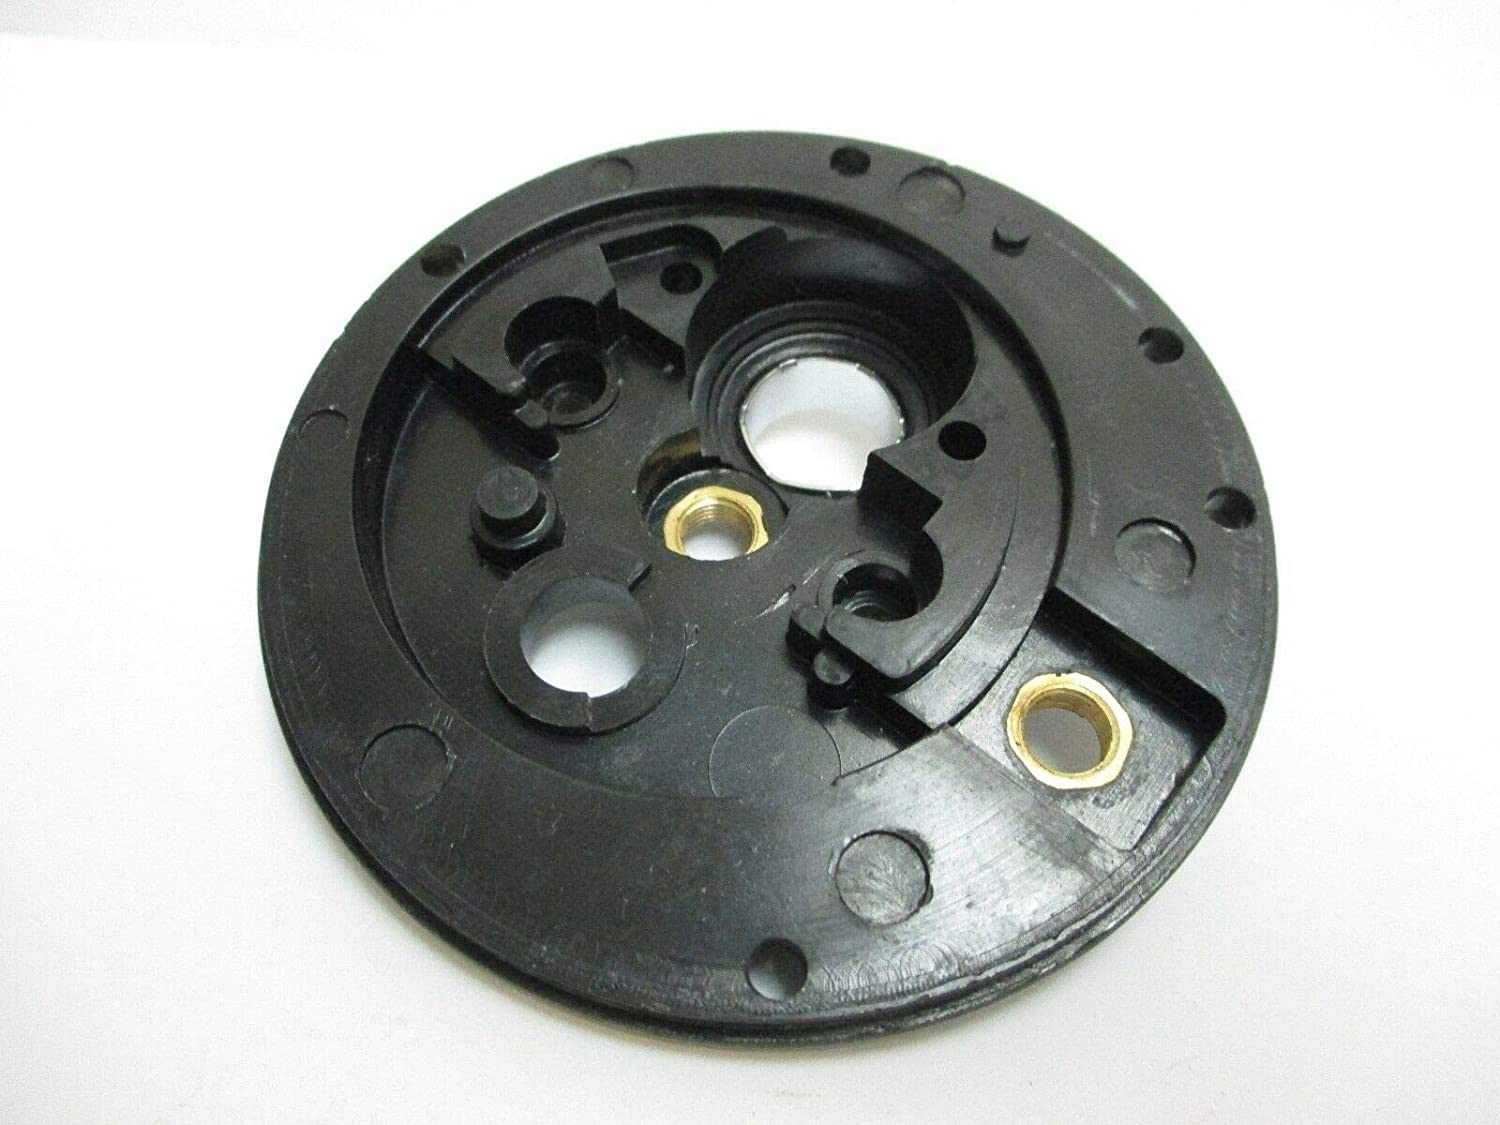 China 1-209 Levelwind 209M Penn Conventional Reel Part Right Side Plate